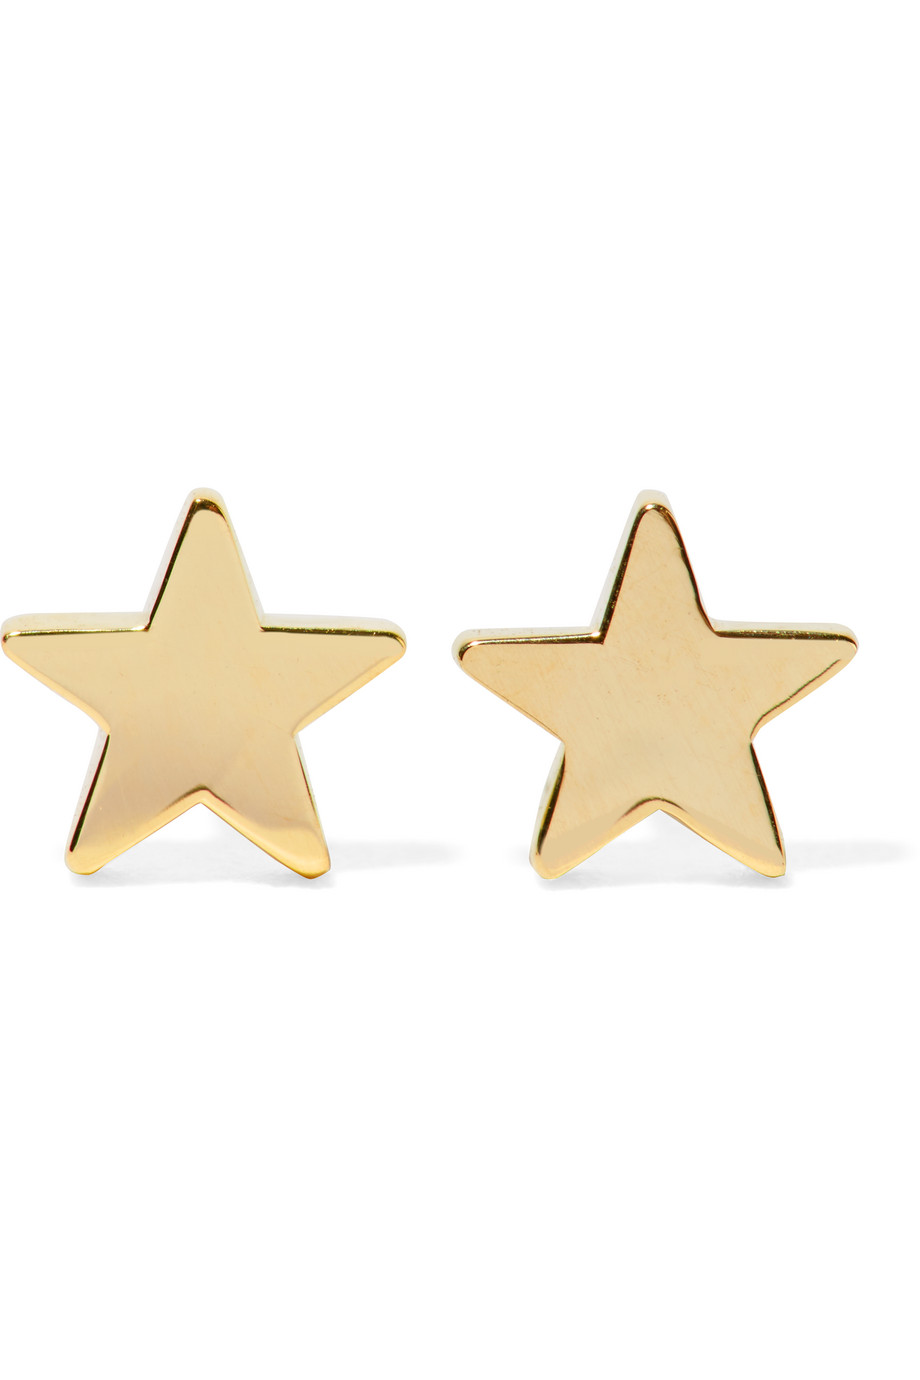 Jennifer Meyer 18-Karat Gold Star Earrings, Women's